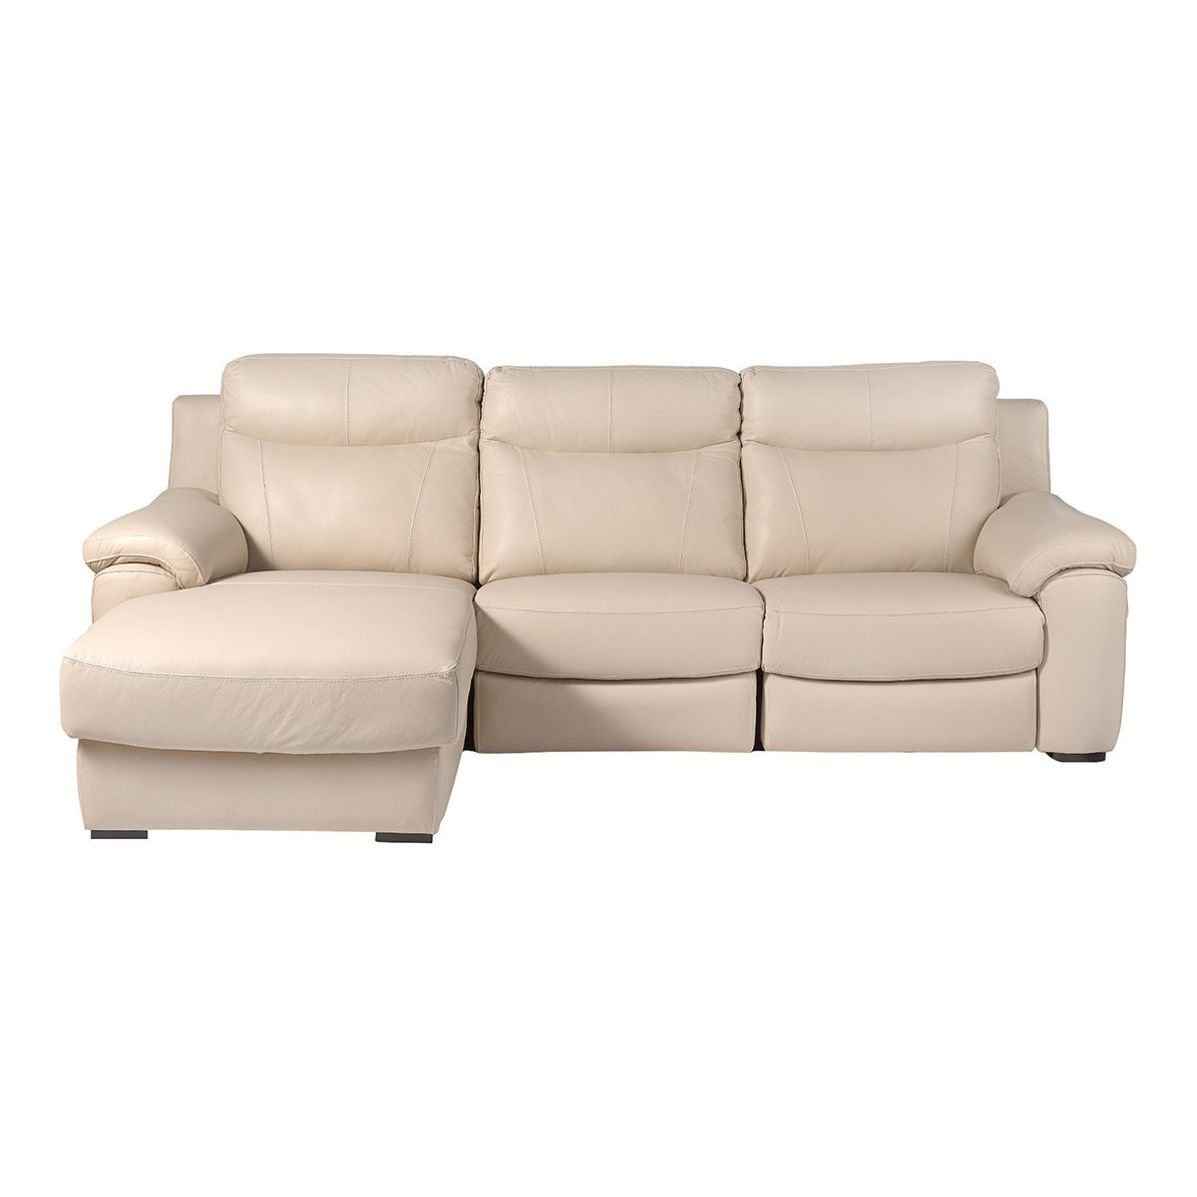 Sof s chaise longue el corte ingl s for Sofa clasico ingles